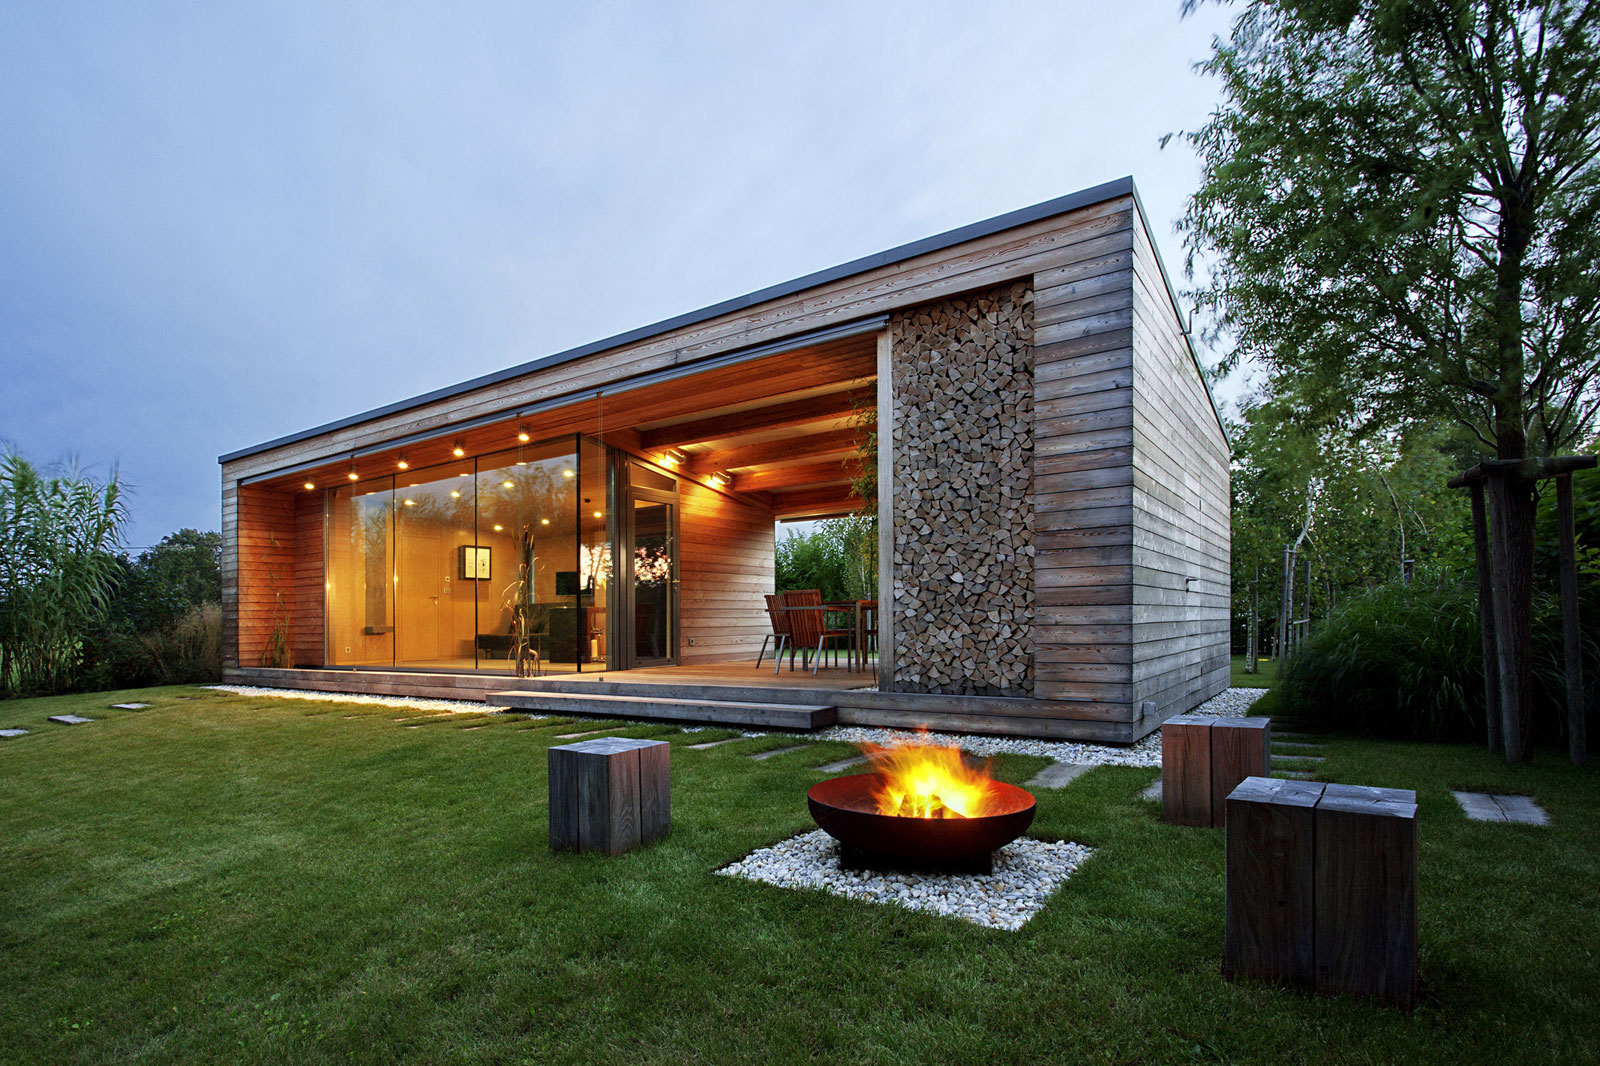 Holiday Cottage near the Lake-Shore by Tóth Project Architect Office-15